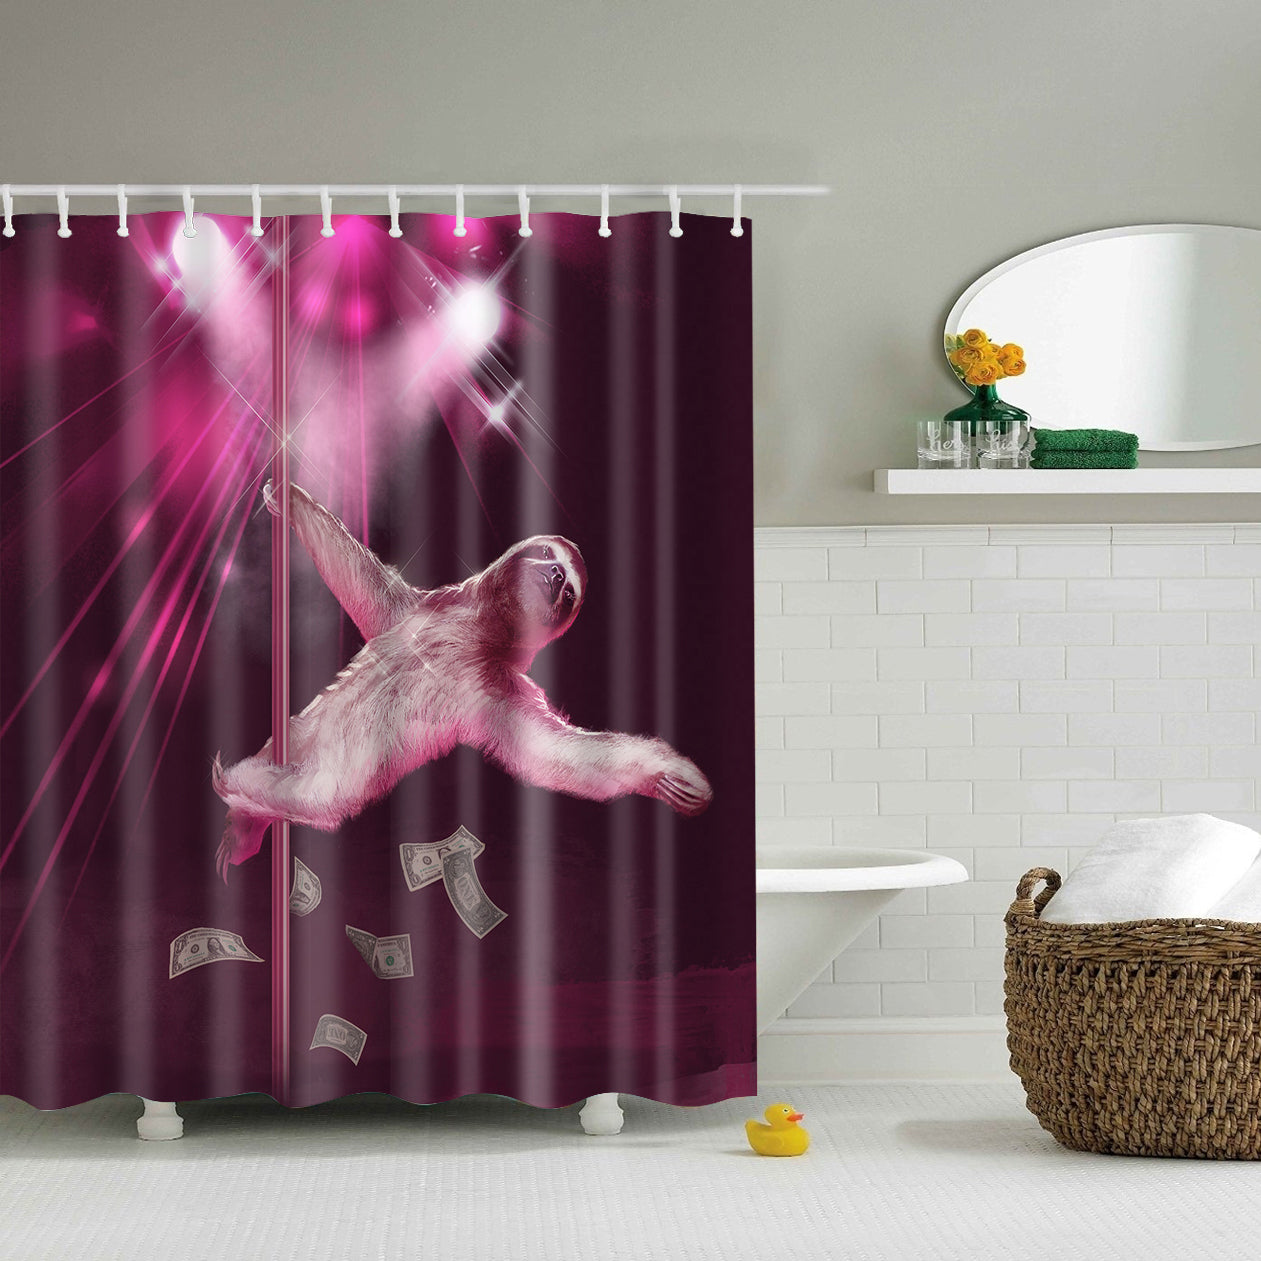 Pink Pole Dancing Stripper Sloth Shower Curtain | GoJeek